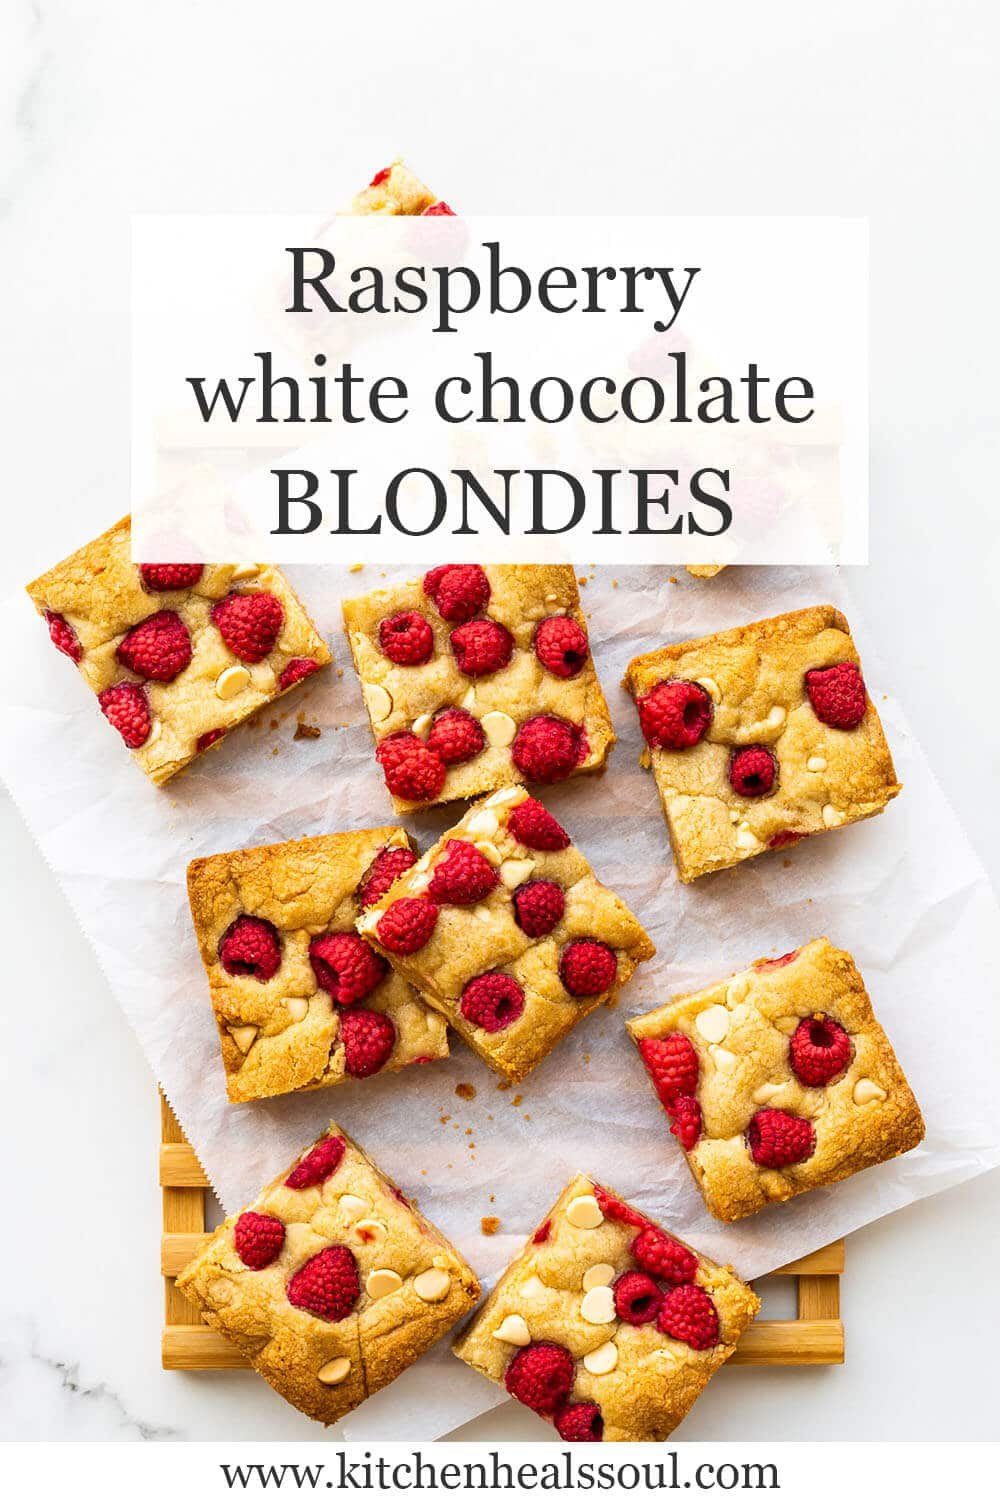 White chocolate chip blondie bars topped with raspberries